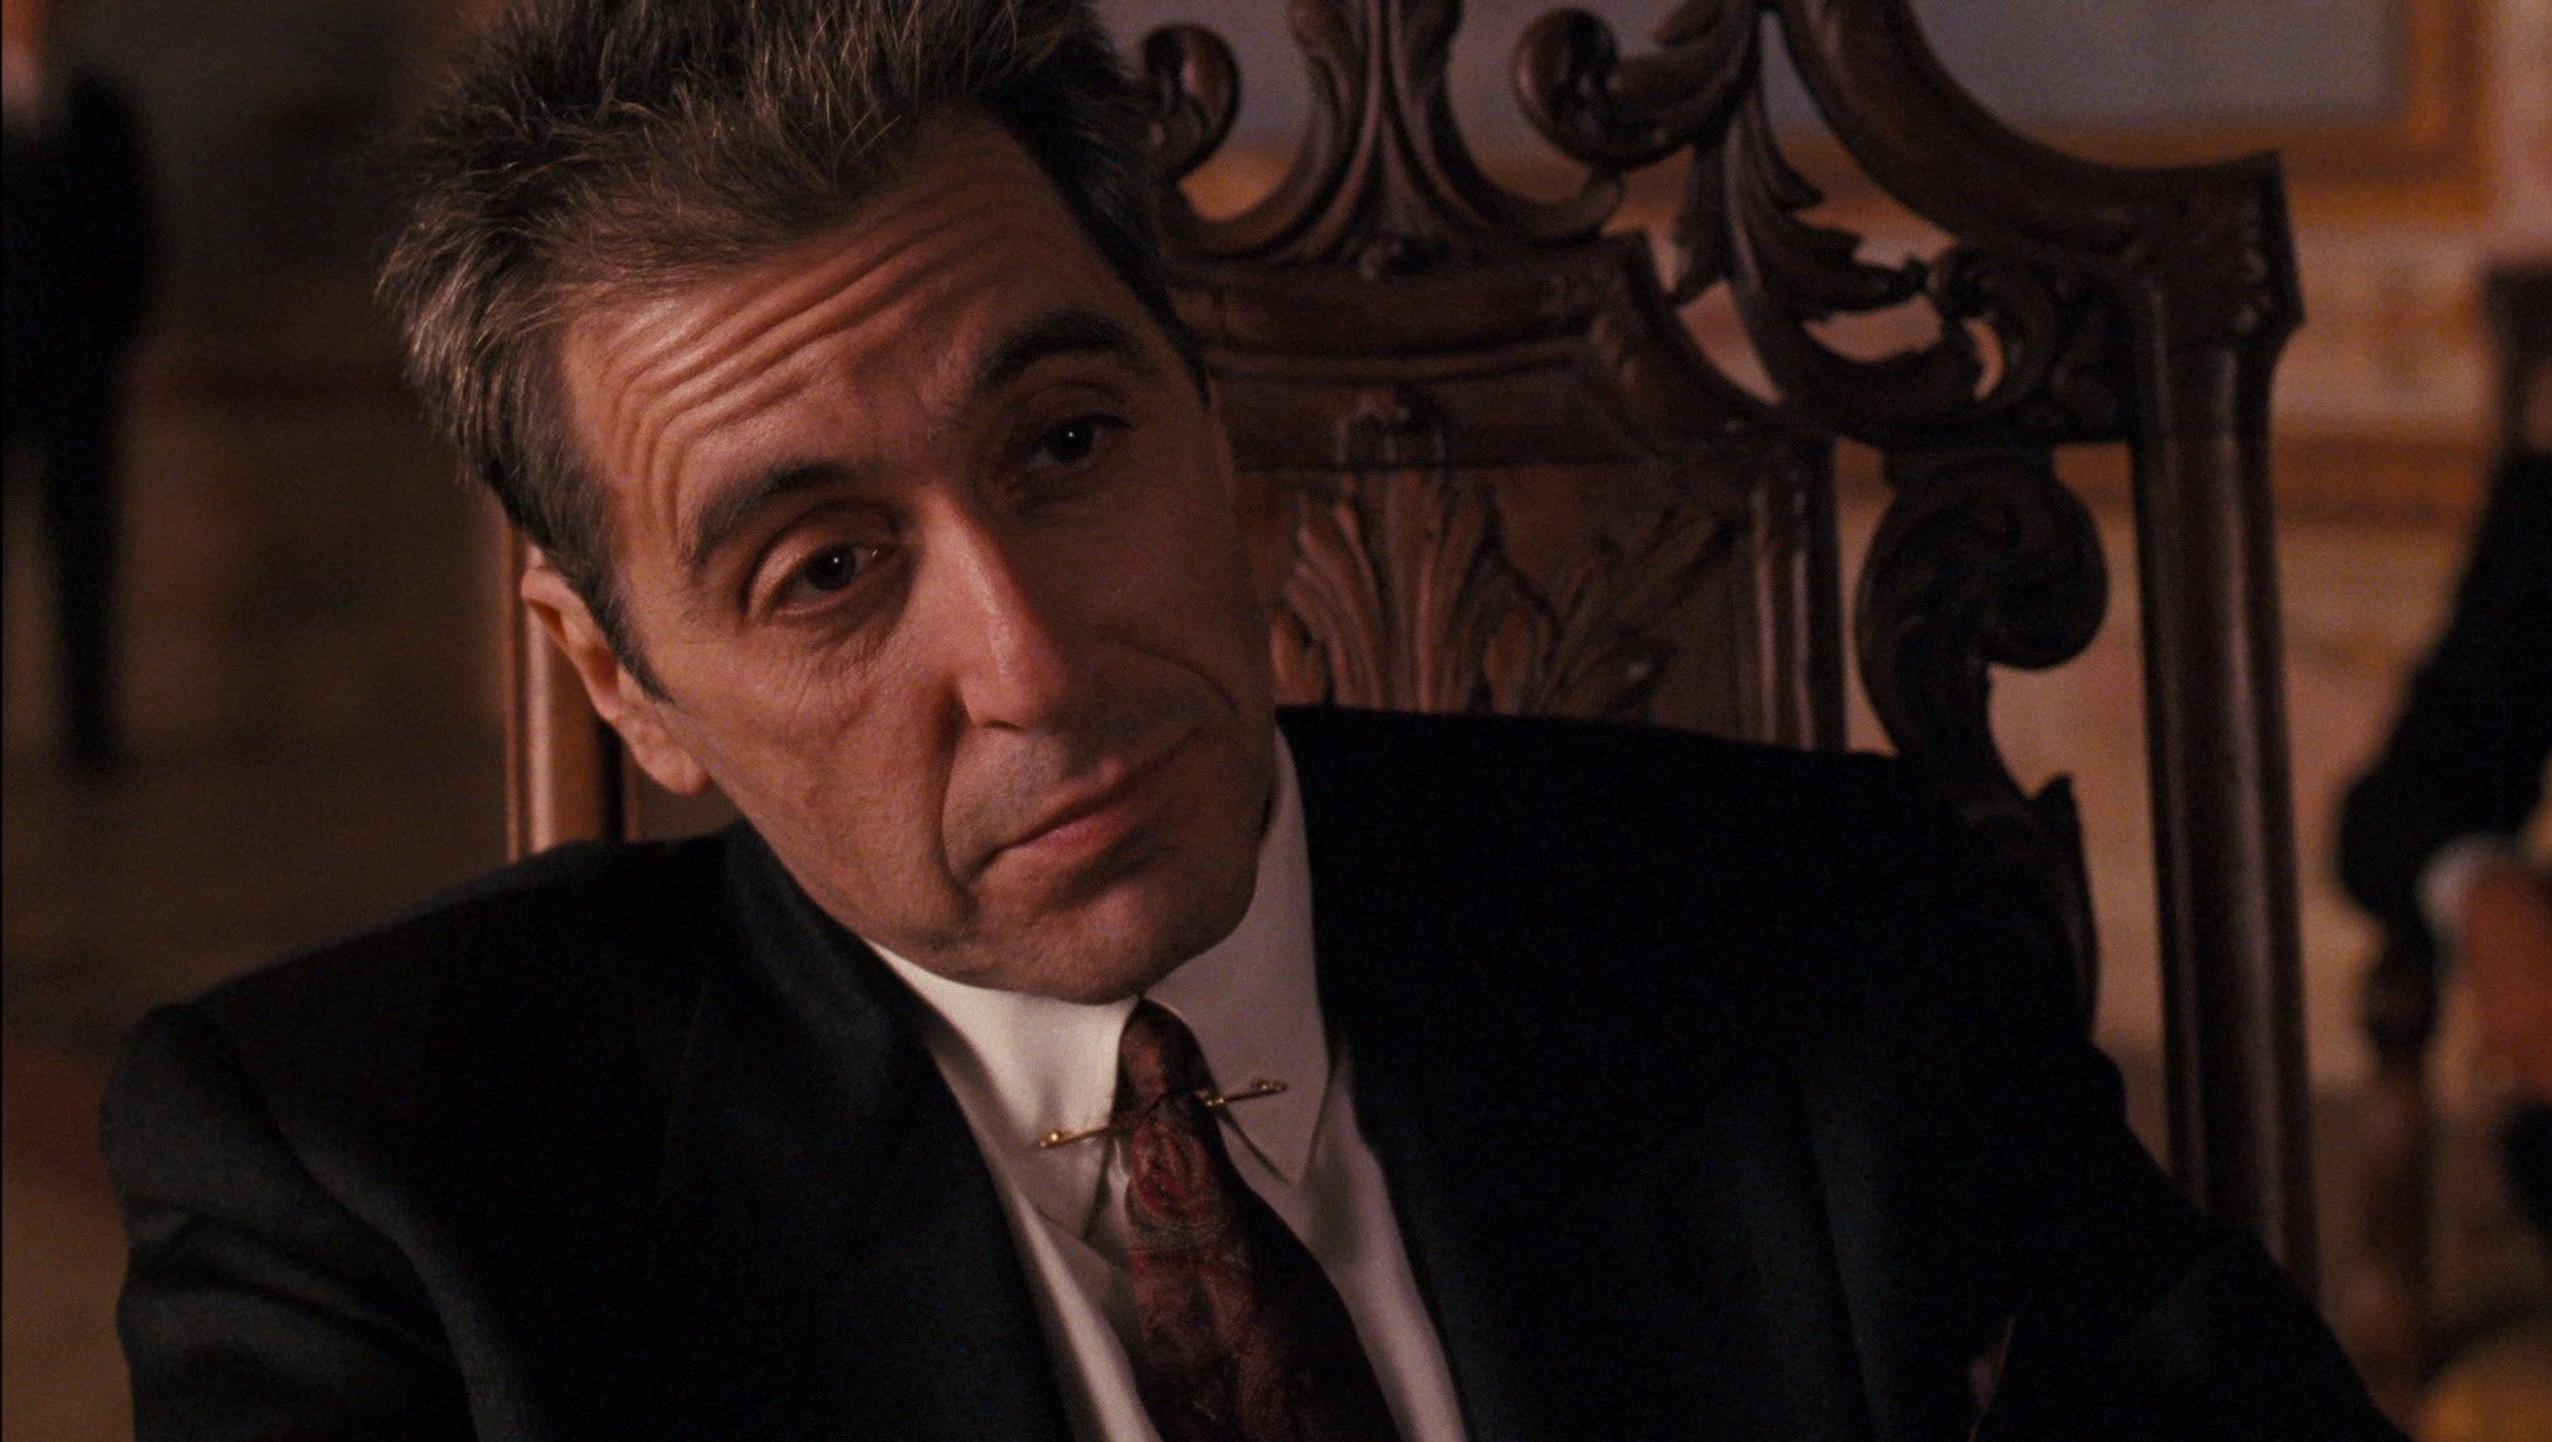 """Res: 2552x1442, Wallpaper for """"The Godfather: Part III"""" ..."""